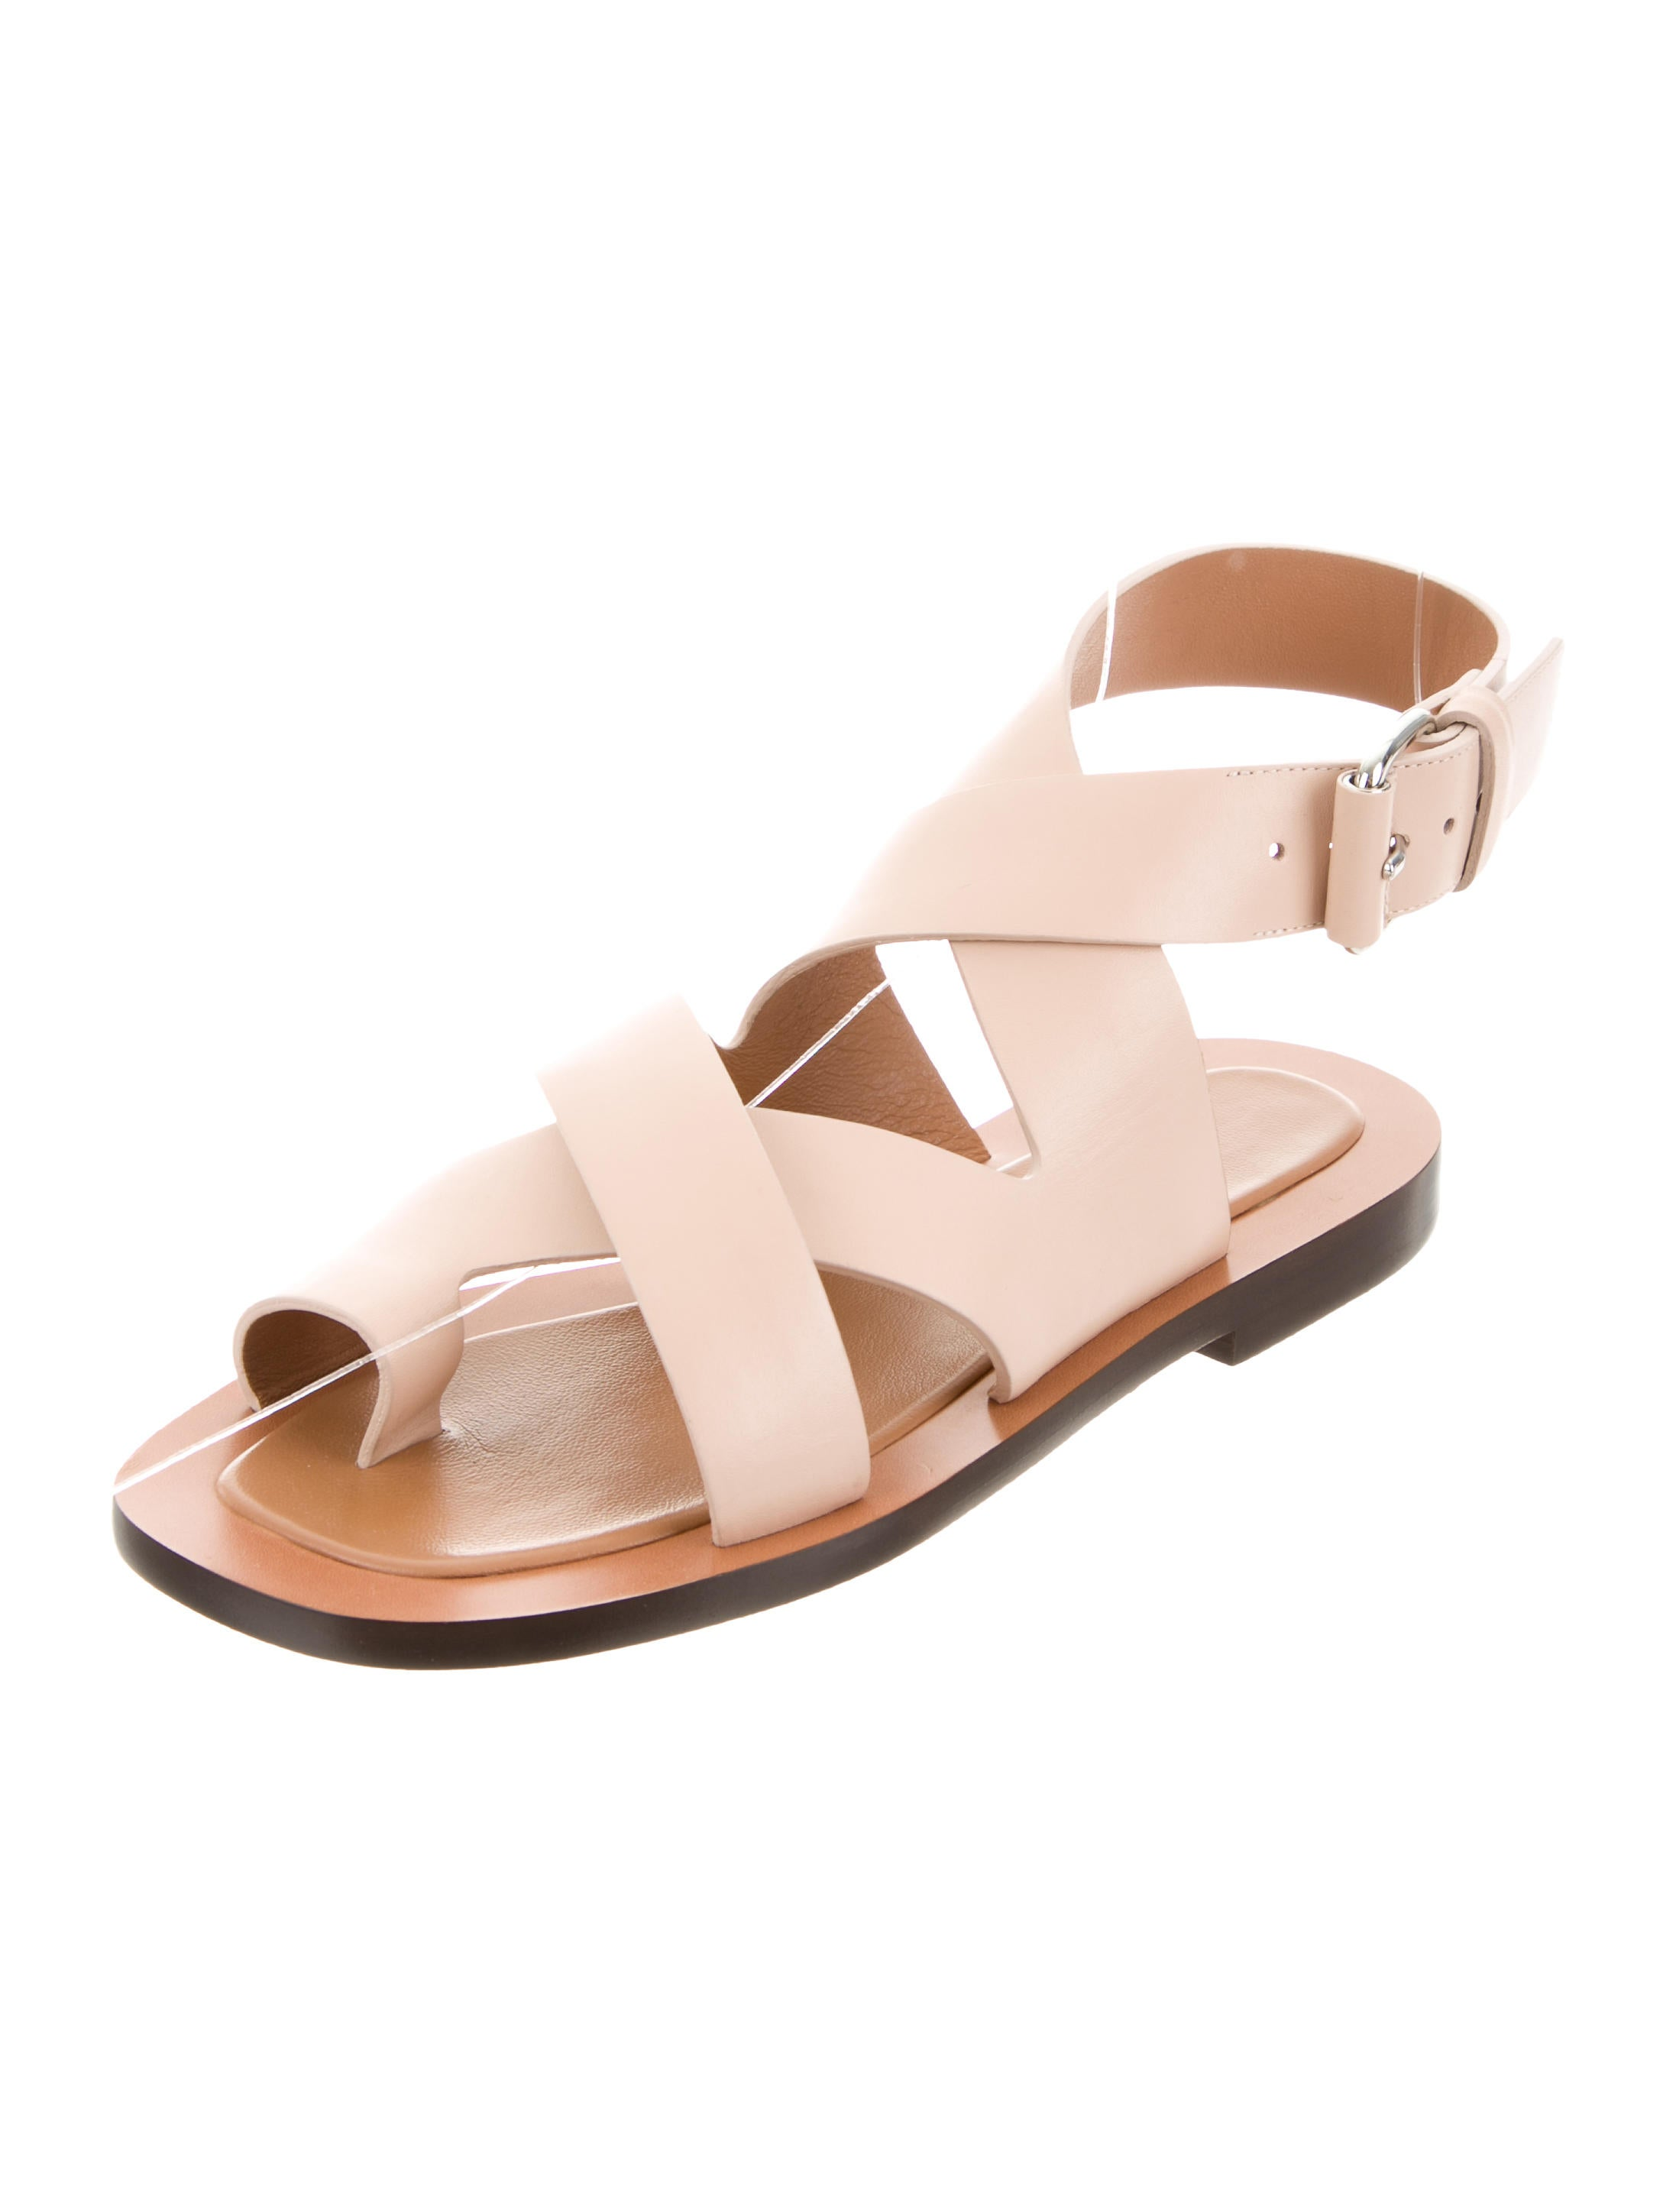 clearance store cheap online Closed Crossover Leather Sandals w/ Tags 2015 new sale online reliable sale online sale low shipping TJfaY460